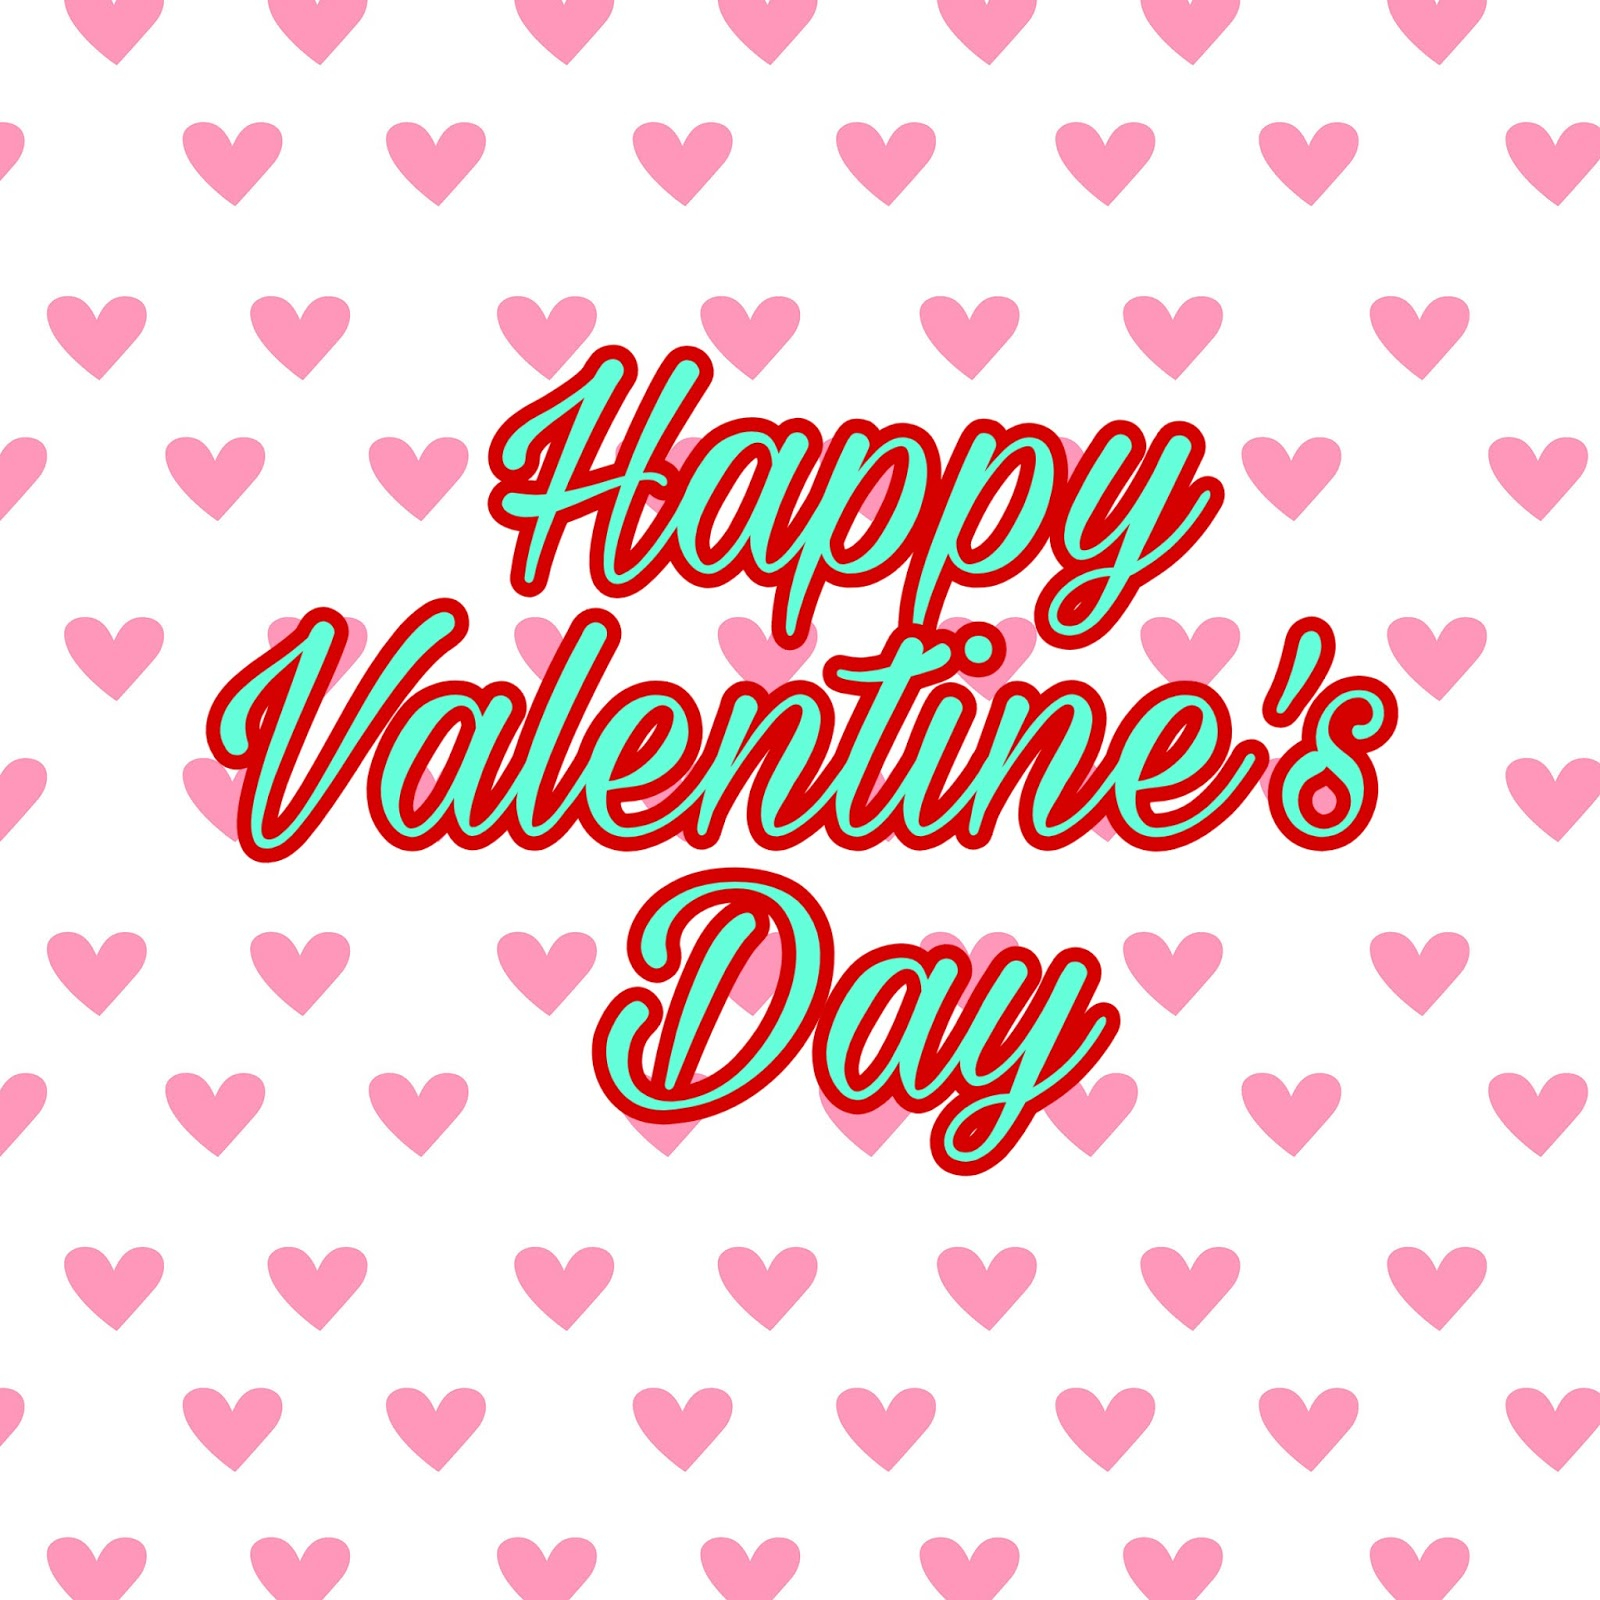 valentines day images %